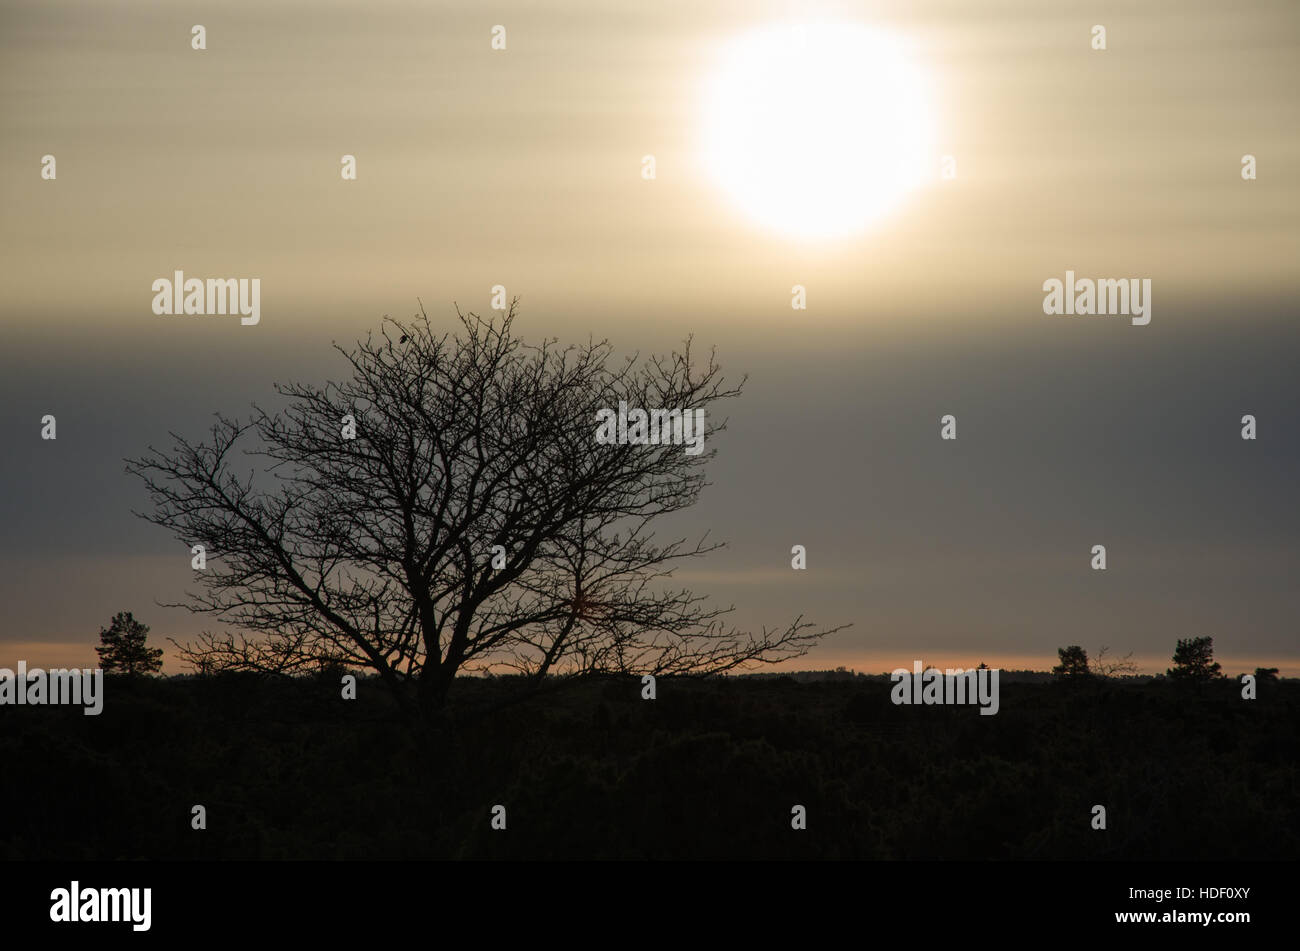 Gloomy landscape with a tree silhouette amongst junipers at the swedish island Oland - Stock Image